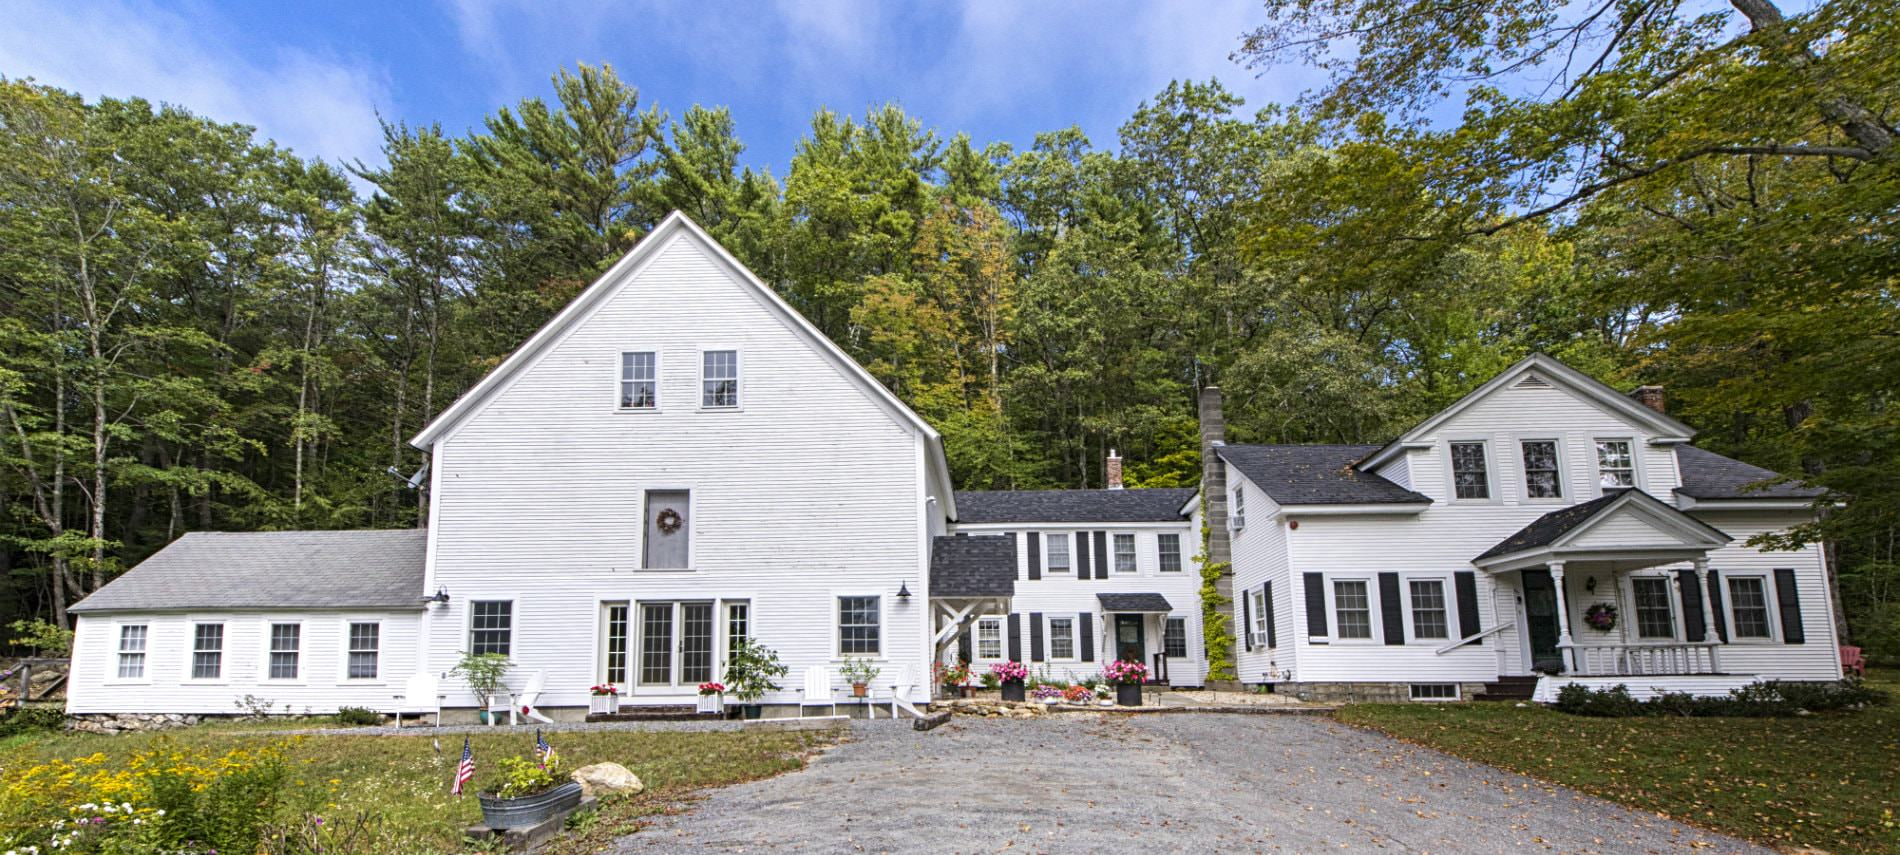 Large white antique house with an attached barn in country setting